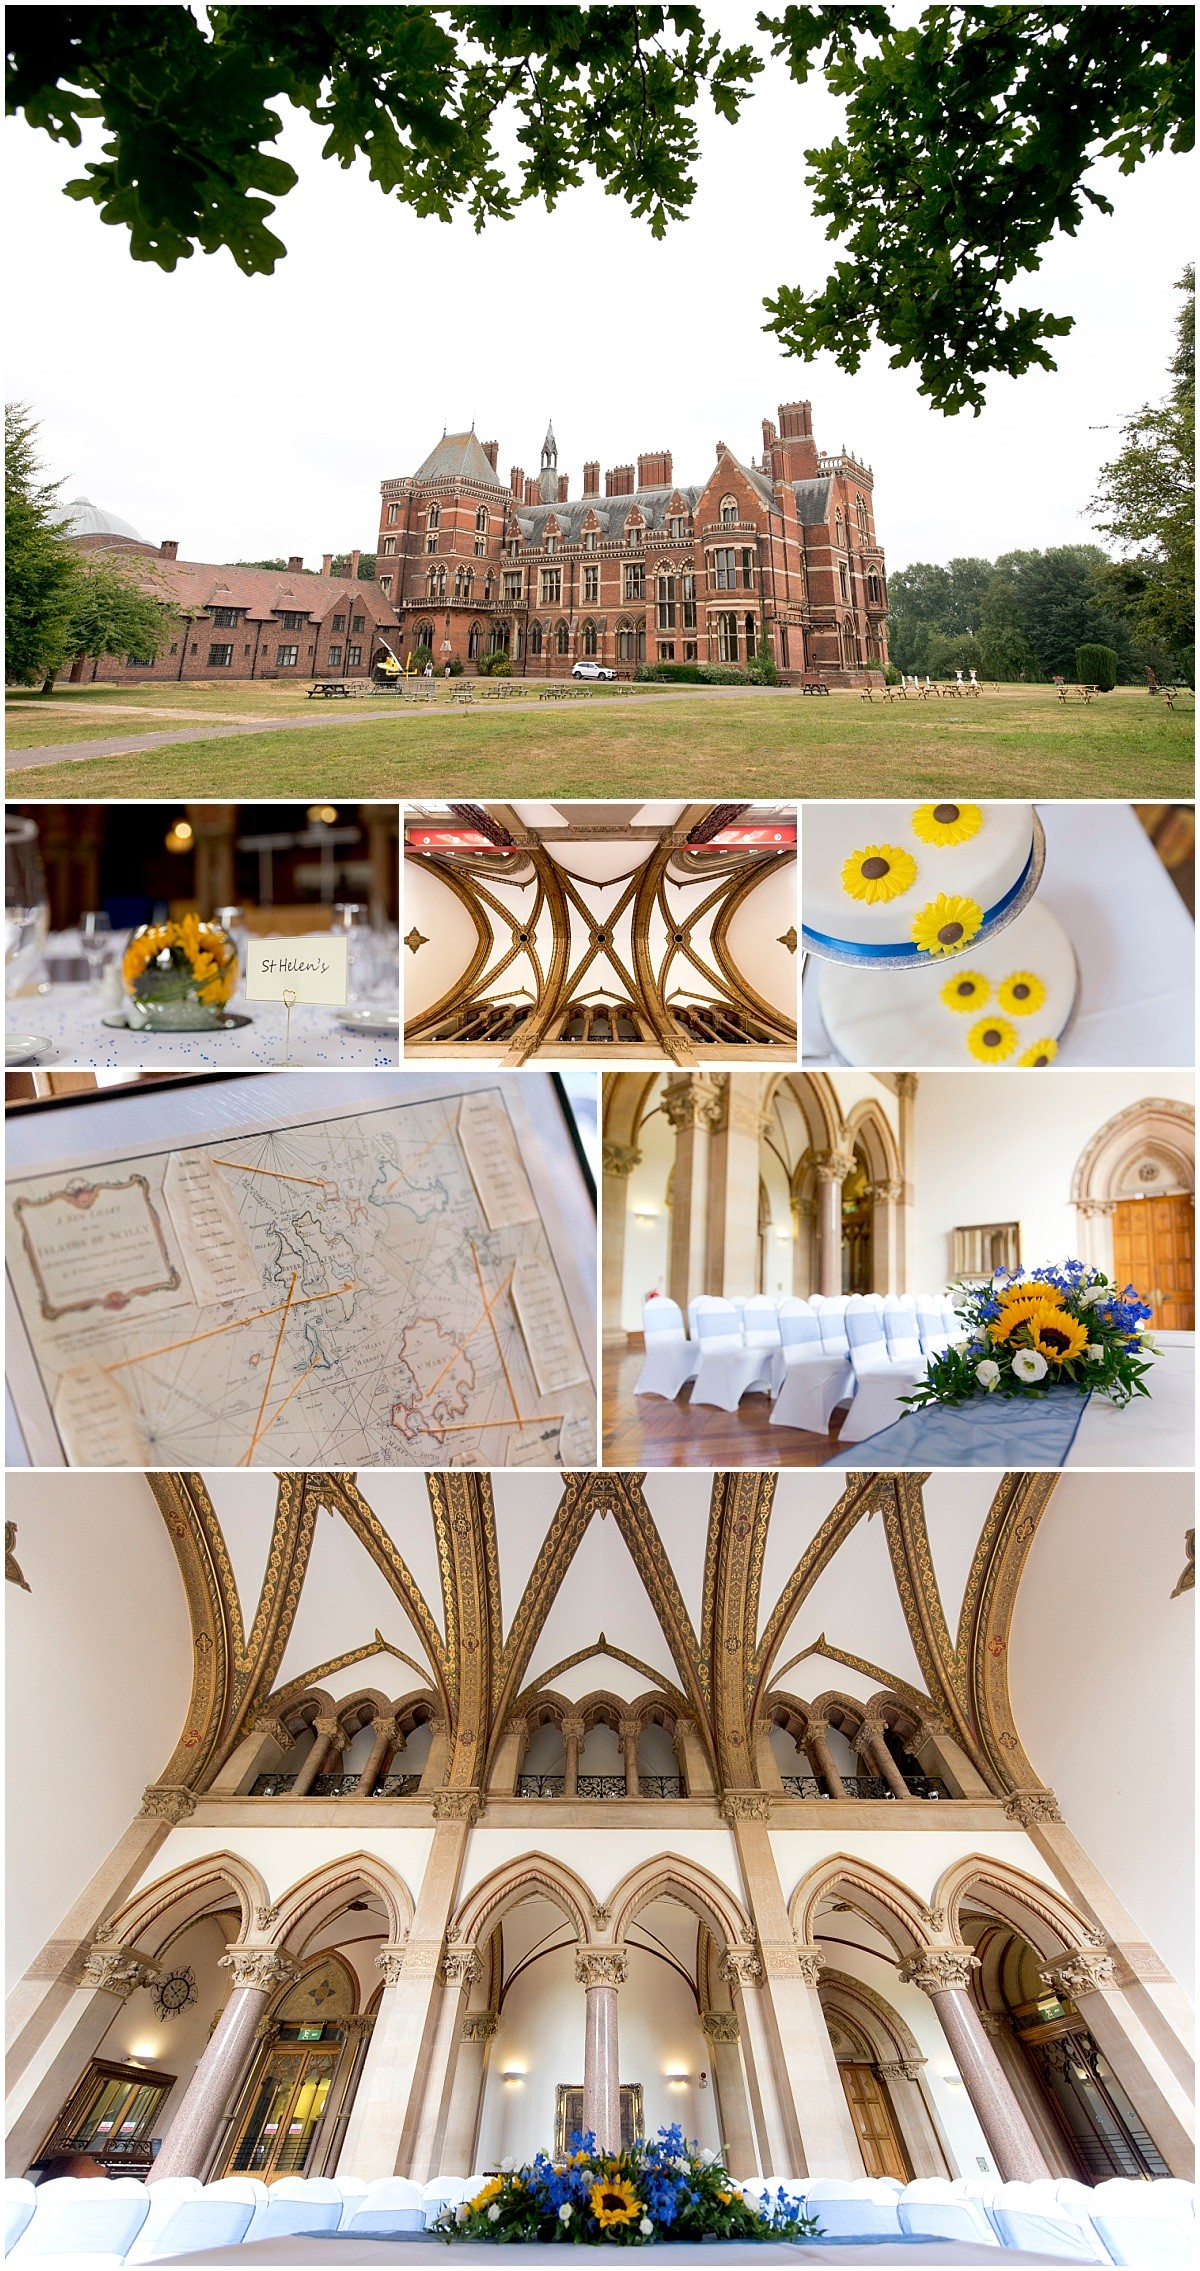 Kelham Hall Wedding Venue externals